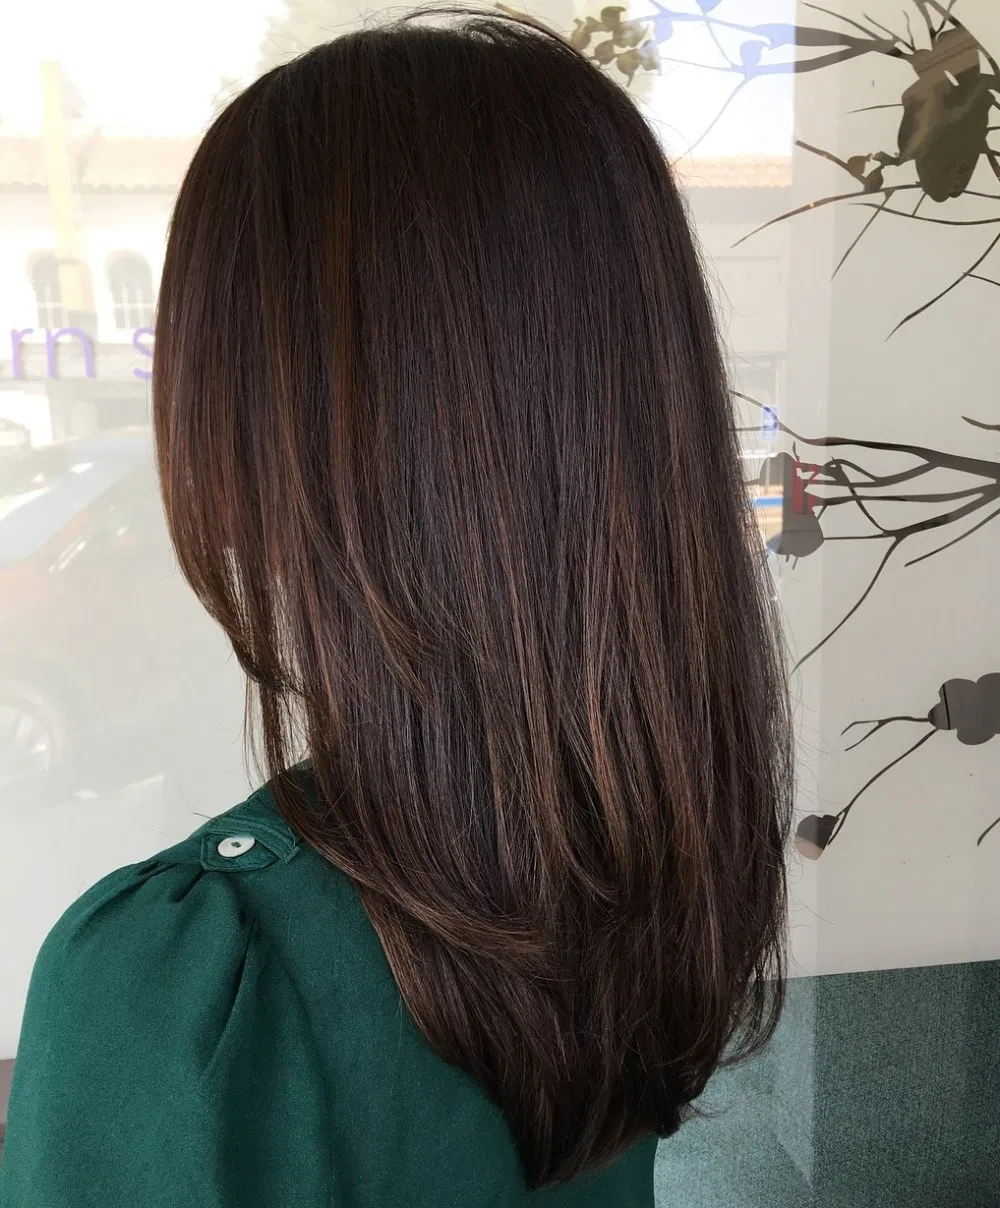 50 Dark Brown Hair With Highlights Ideas For 2020 Brunette Hair Color Hair Highlights Dark Brown Hair